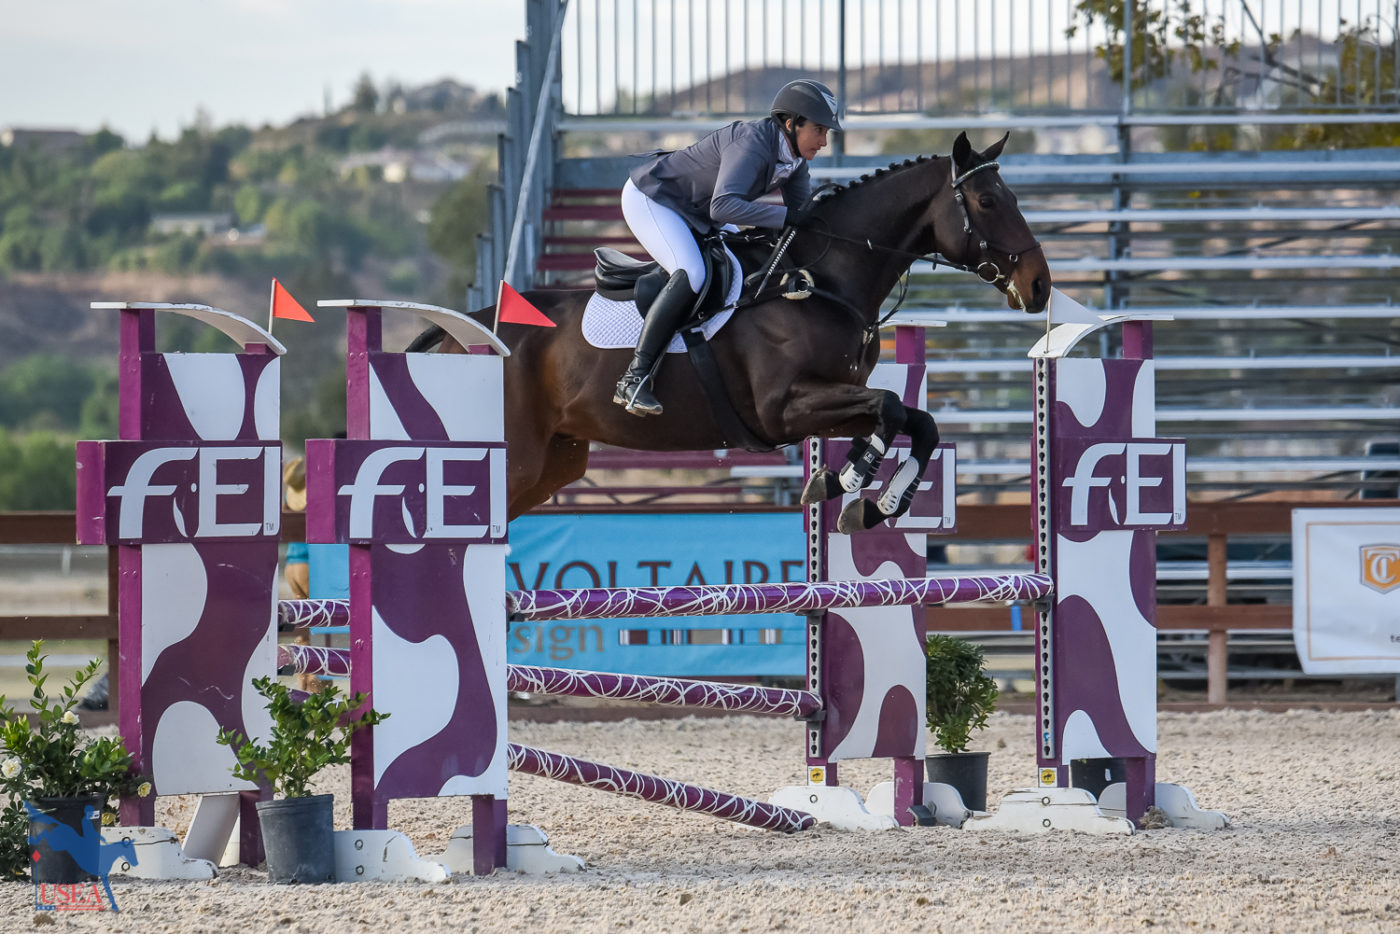 15th - Stephanie Nicora and Highly Likely - 50.8